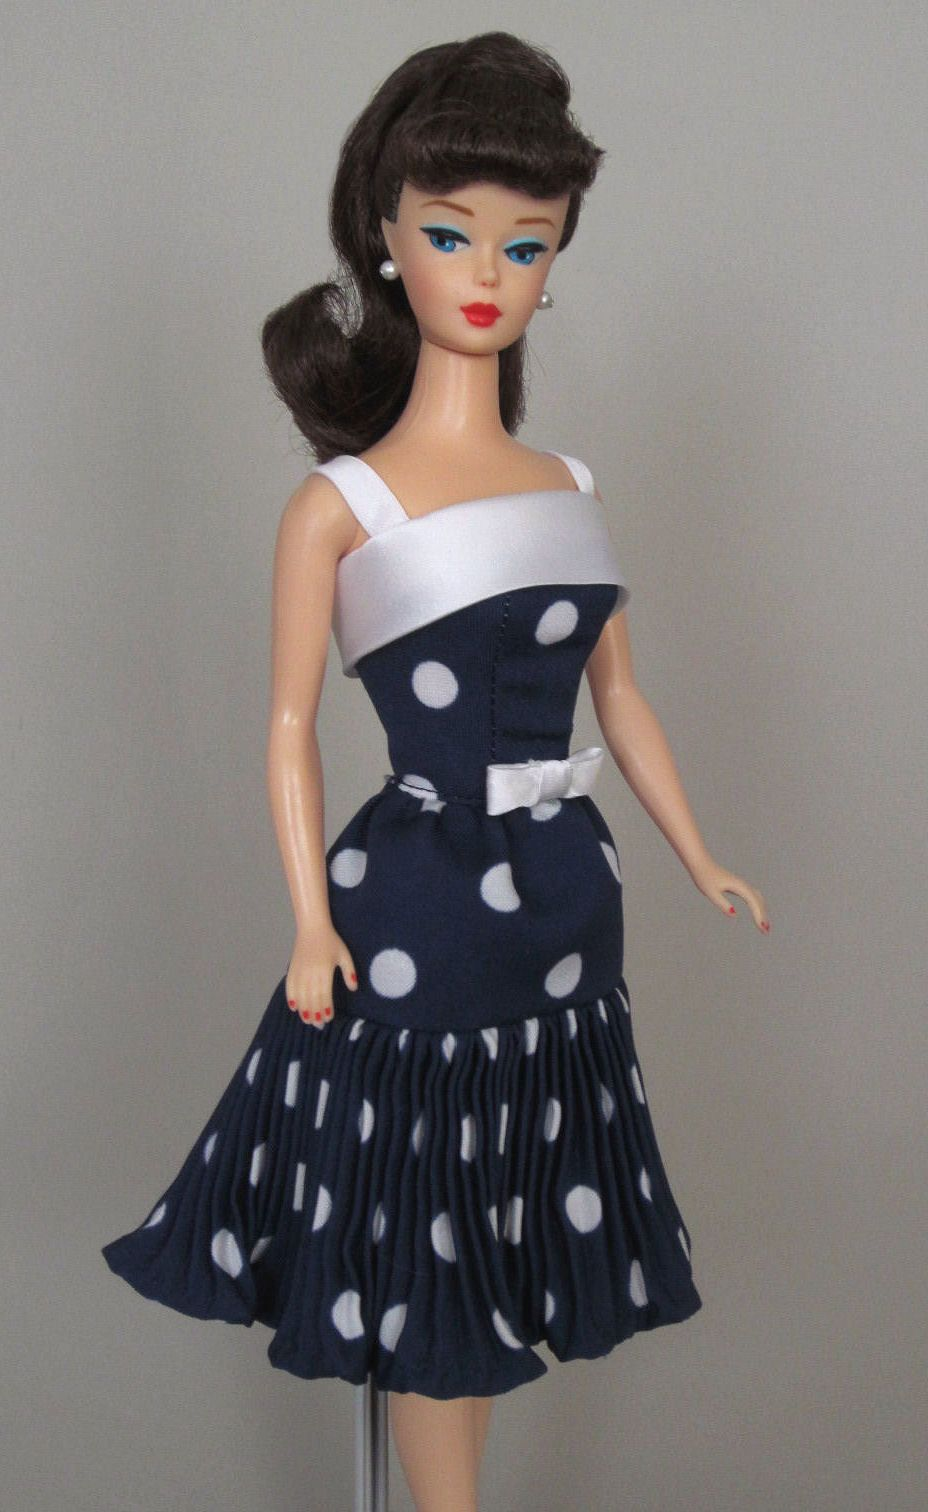 Uptown Girl Vintage Barbie Doll Dress Reproduction Barbie Clothes On Ebay Http Www Ebay Com Usr Fanfare1901 Barbie Dress Doll Dress Barbie Clothes Patterns